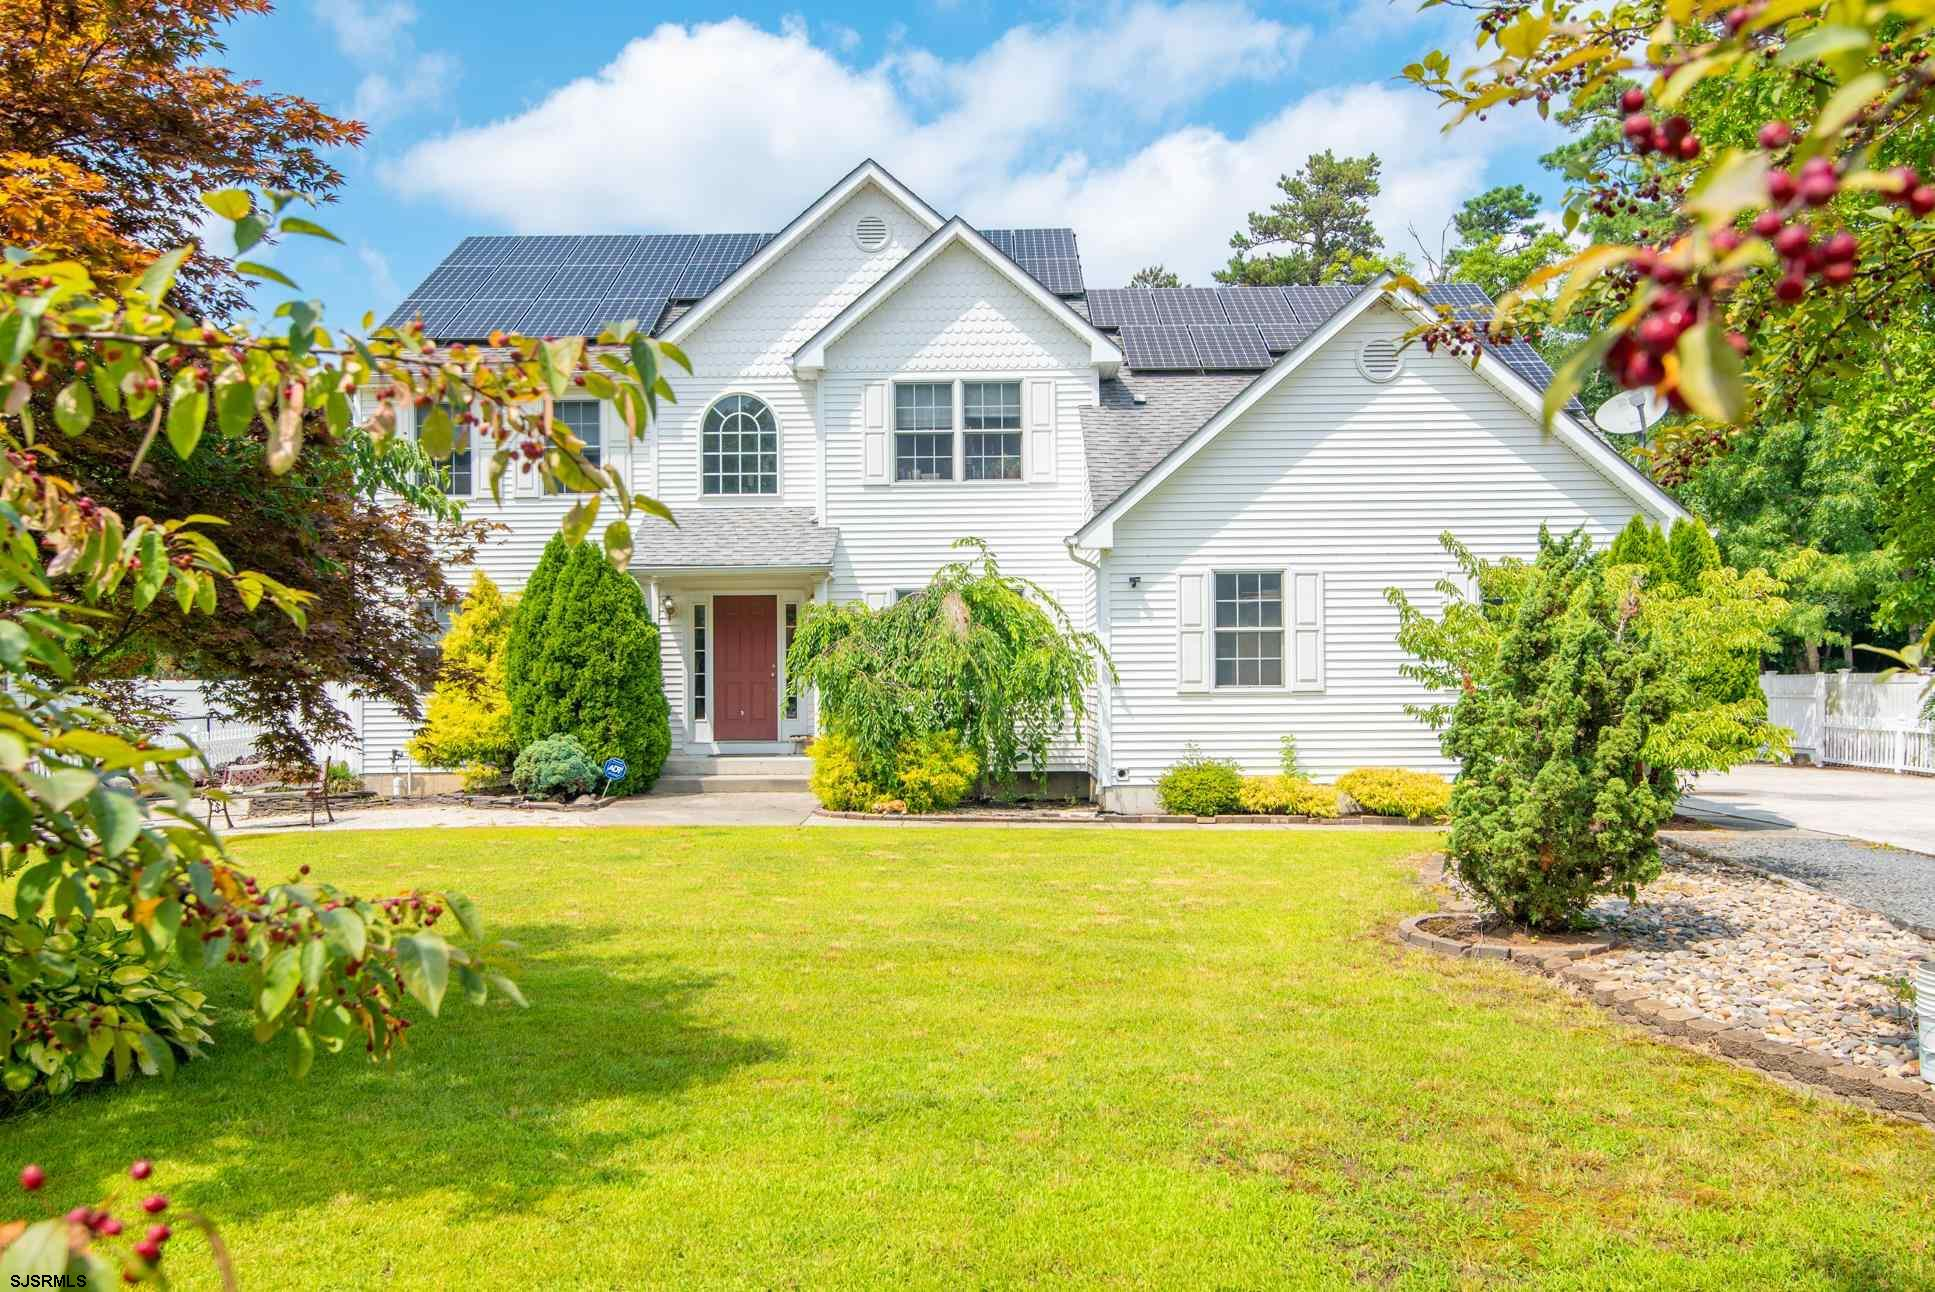 This Custom Built Home with beautiful landscape, 6 Bedrooms and 4 full baths; finished basement and